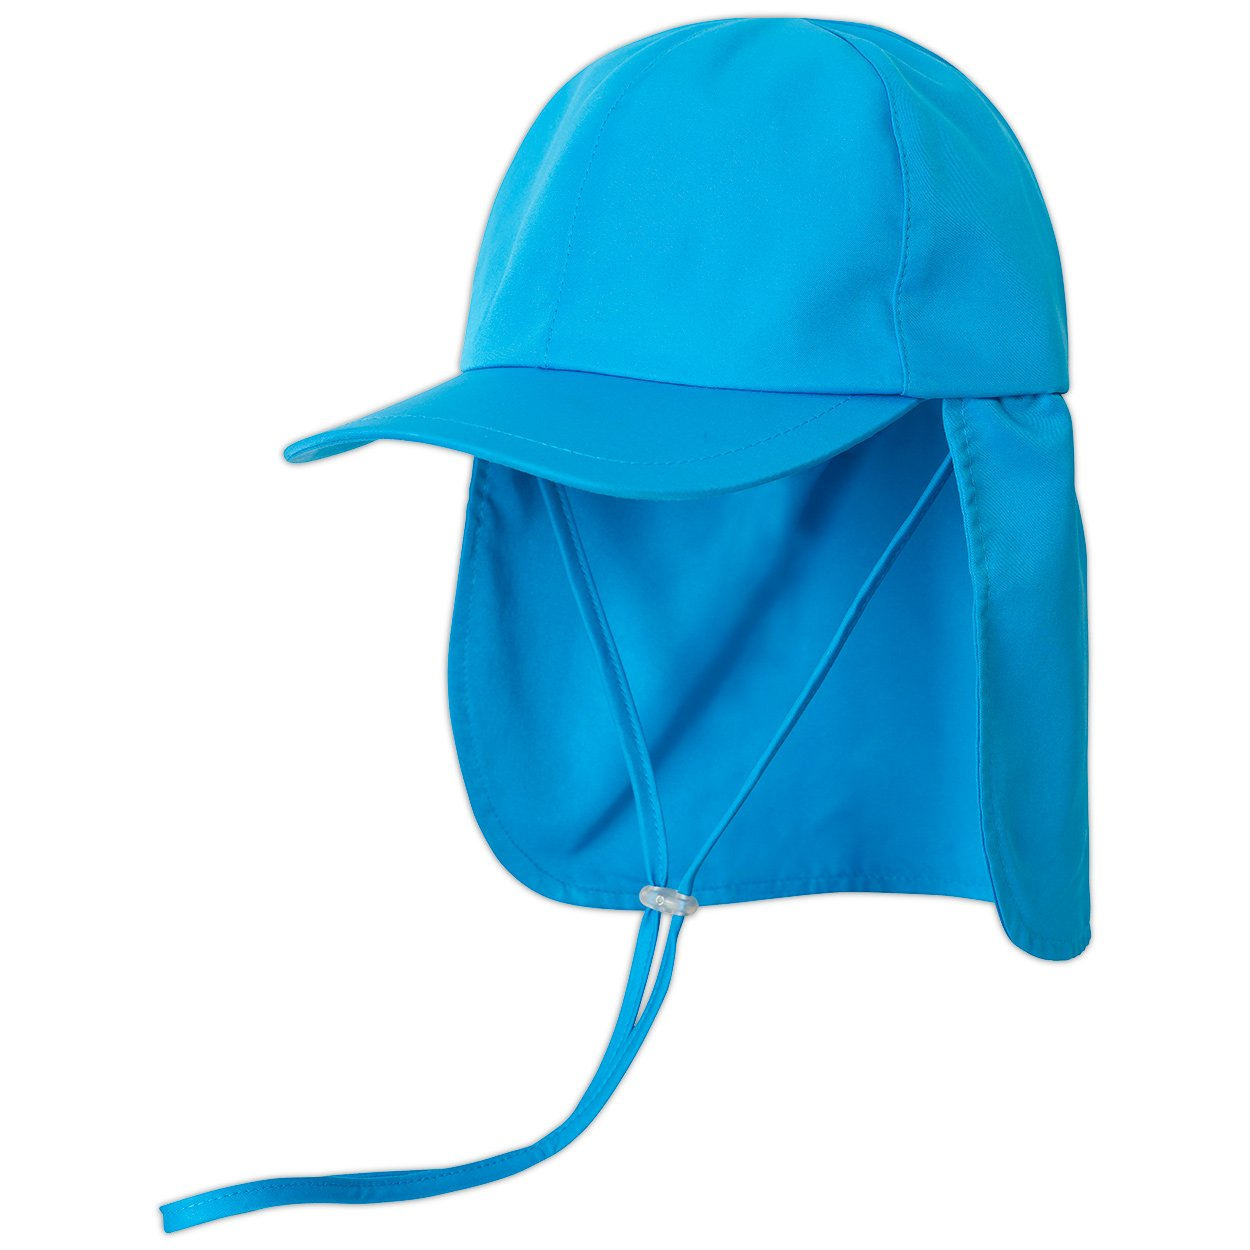 Kids Blue Legionnaire Sun Hat Upf 50 Size S Xl Unisex Boys Girls Blue Left View Sunpoplife